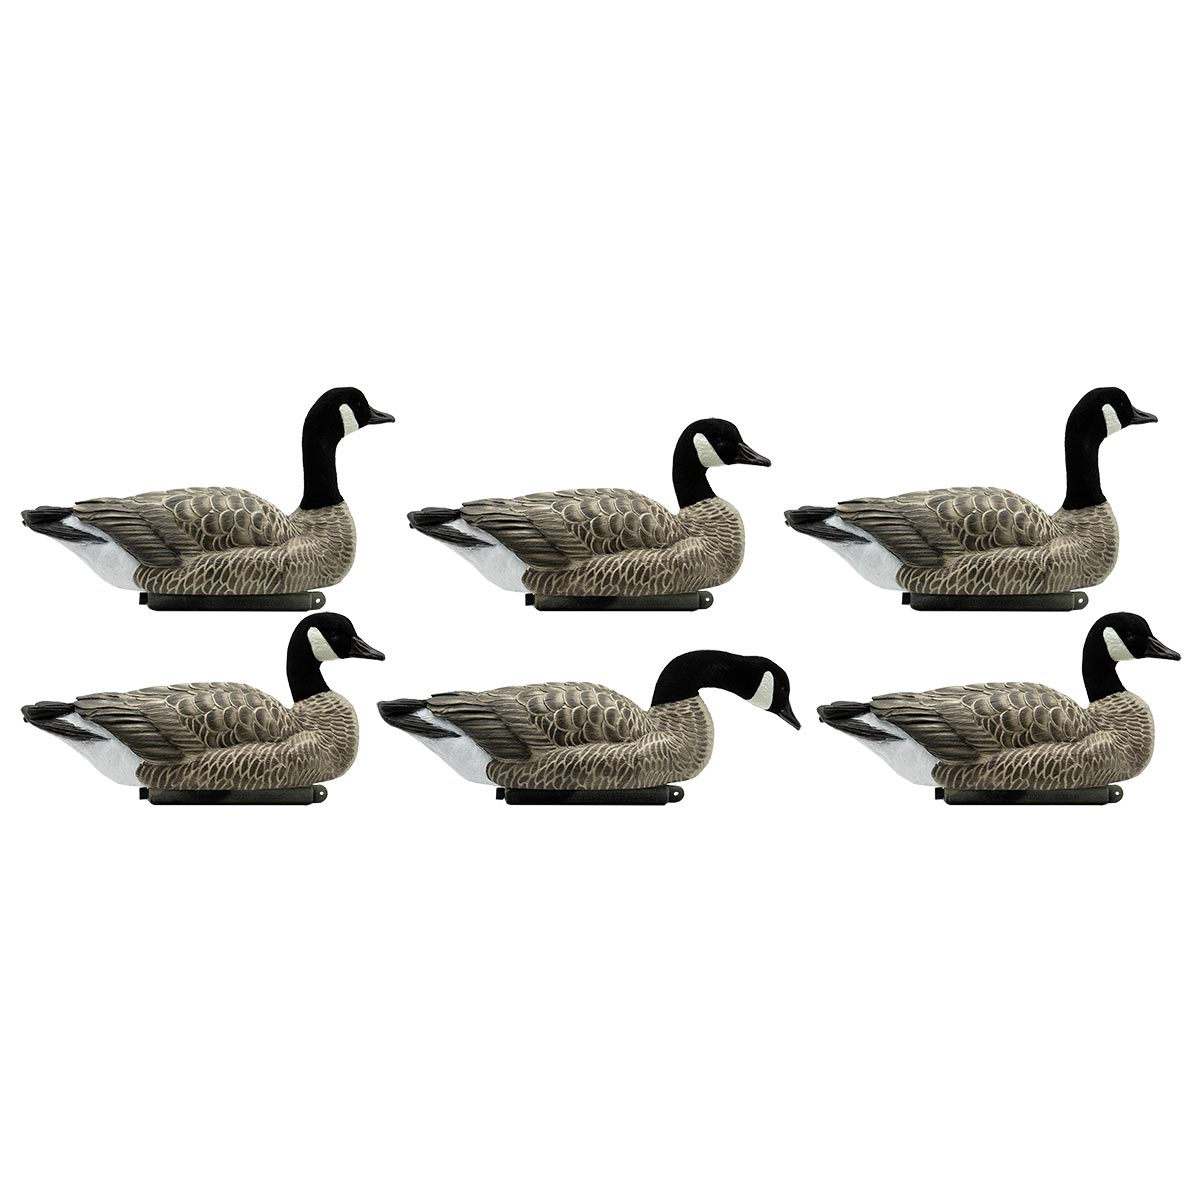 Dakota Decoys X-Treme Lesser Floater Decoys with Flocked Heads, 6-Pack